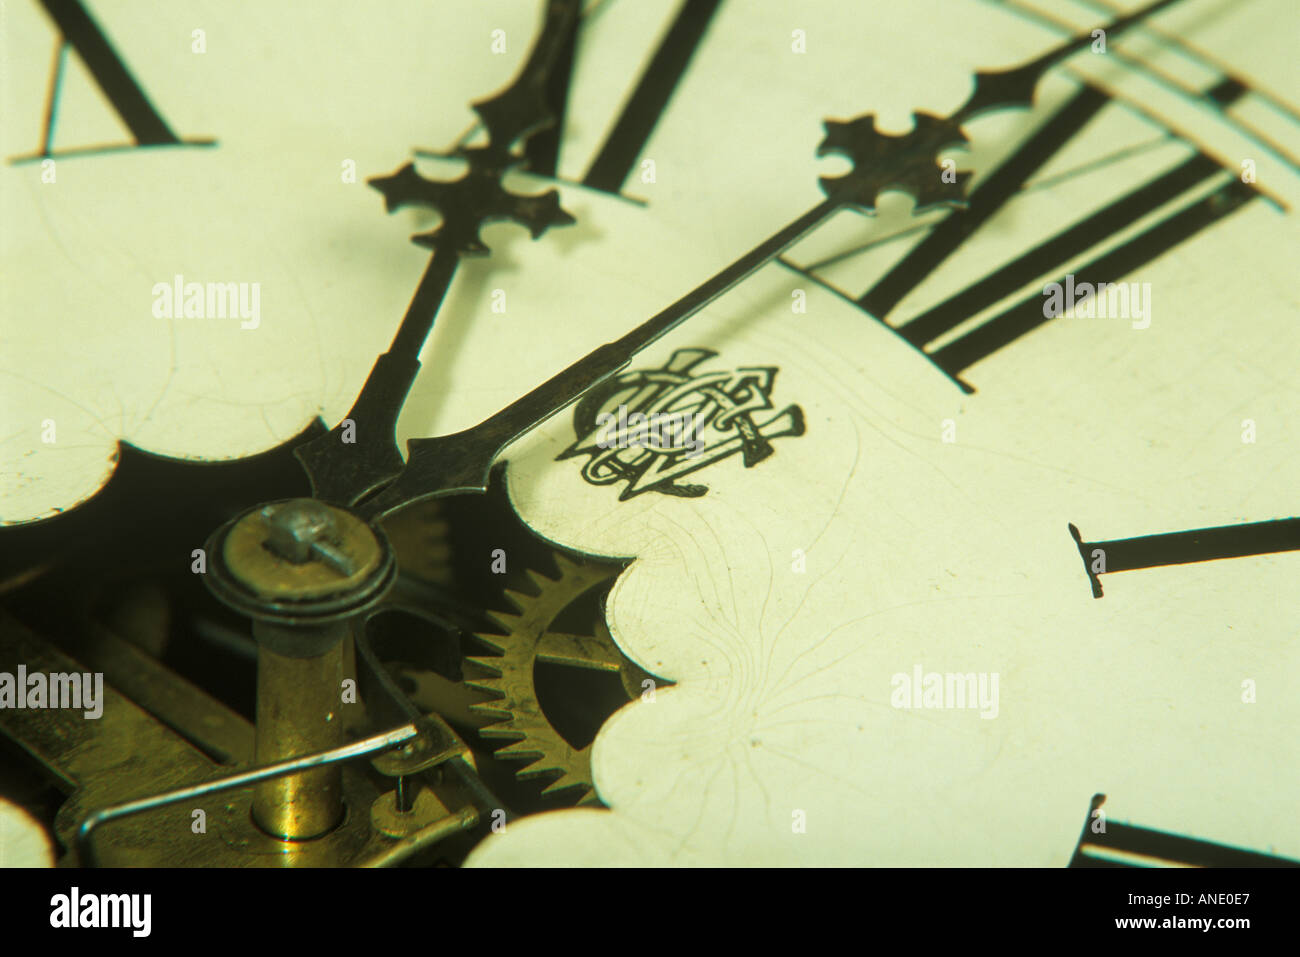 Clock Face with Roman Numerals - Stock Image